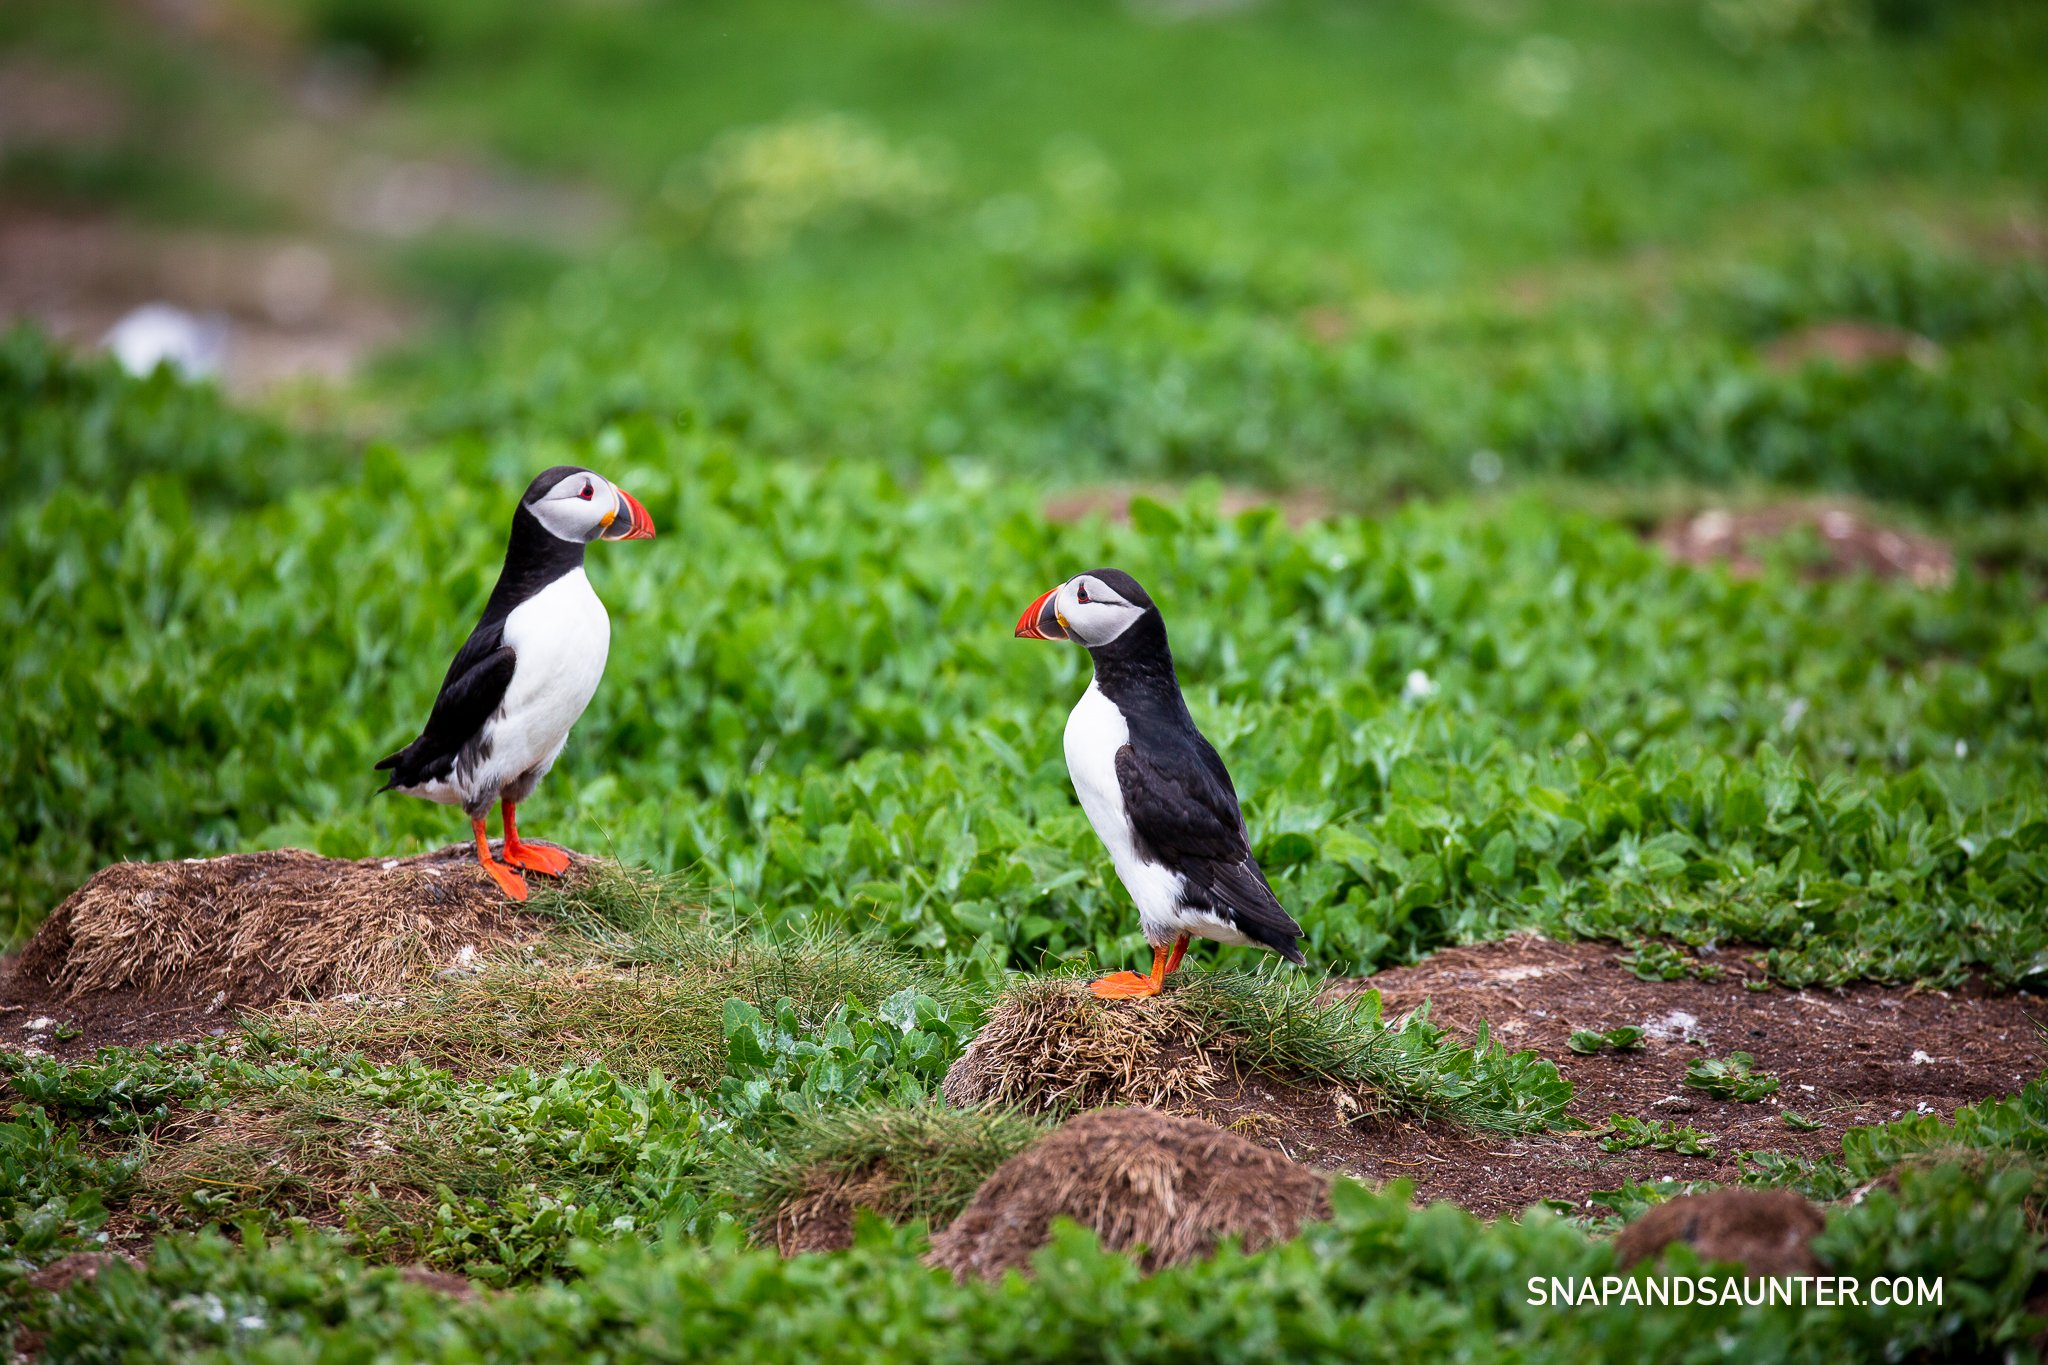 A couple of puffins looking at each other.